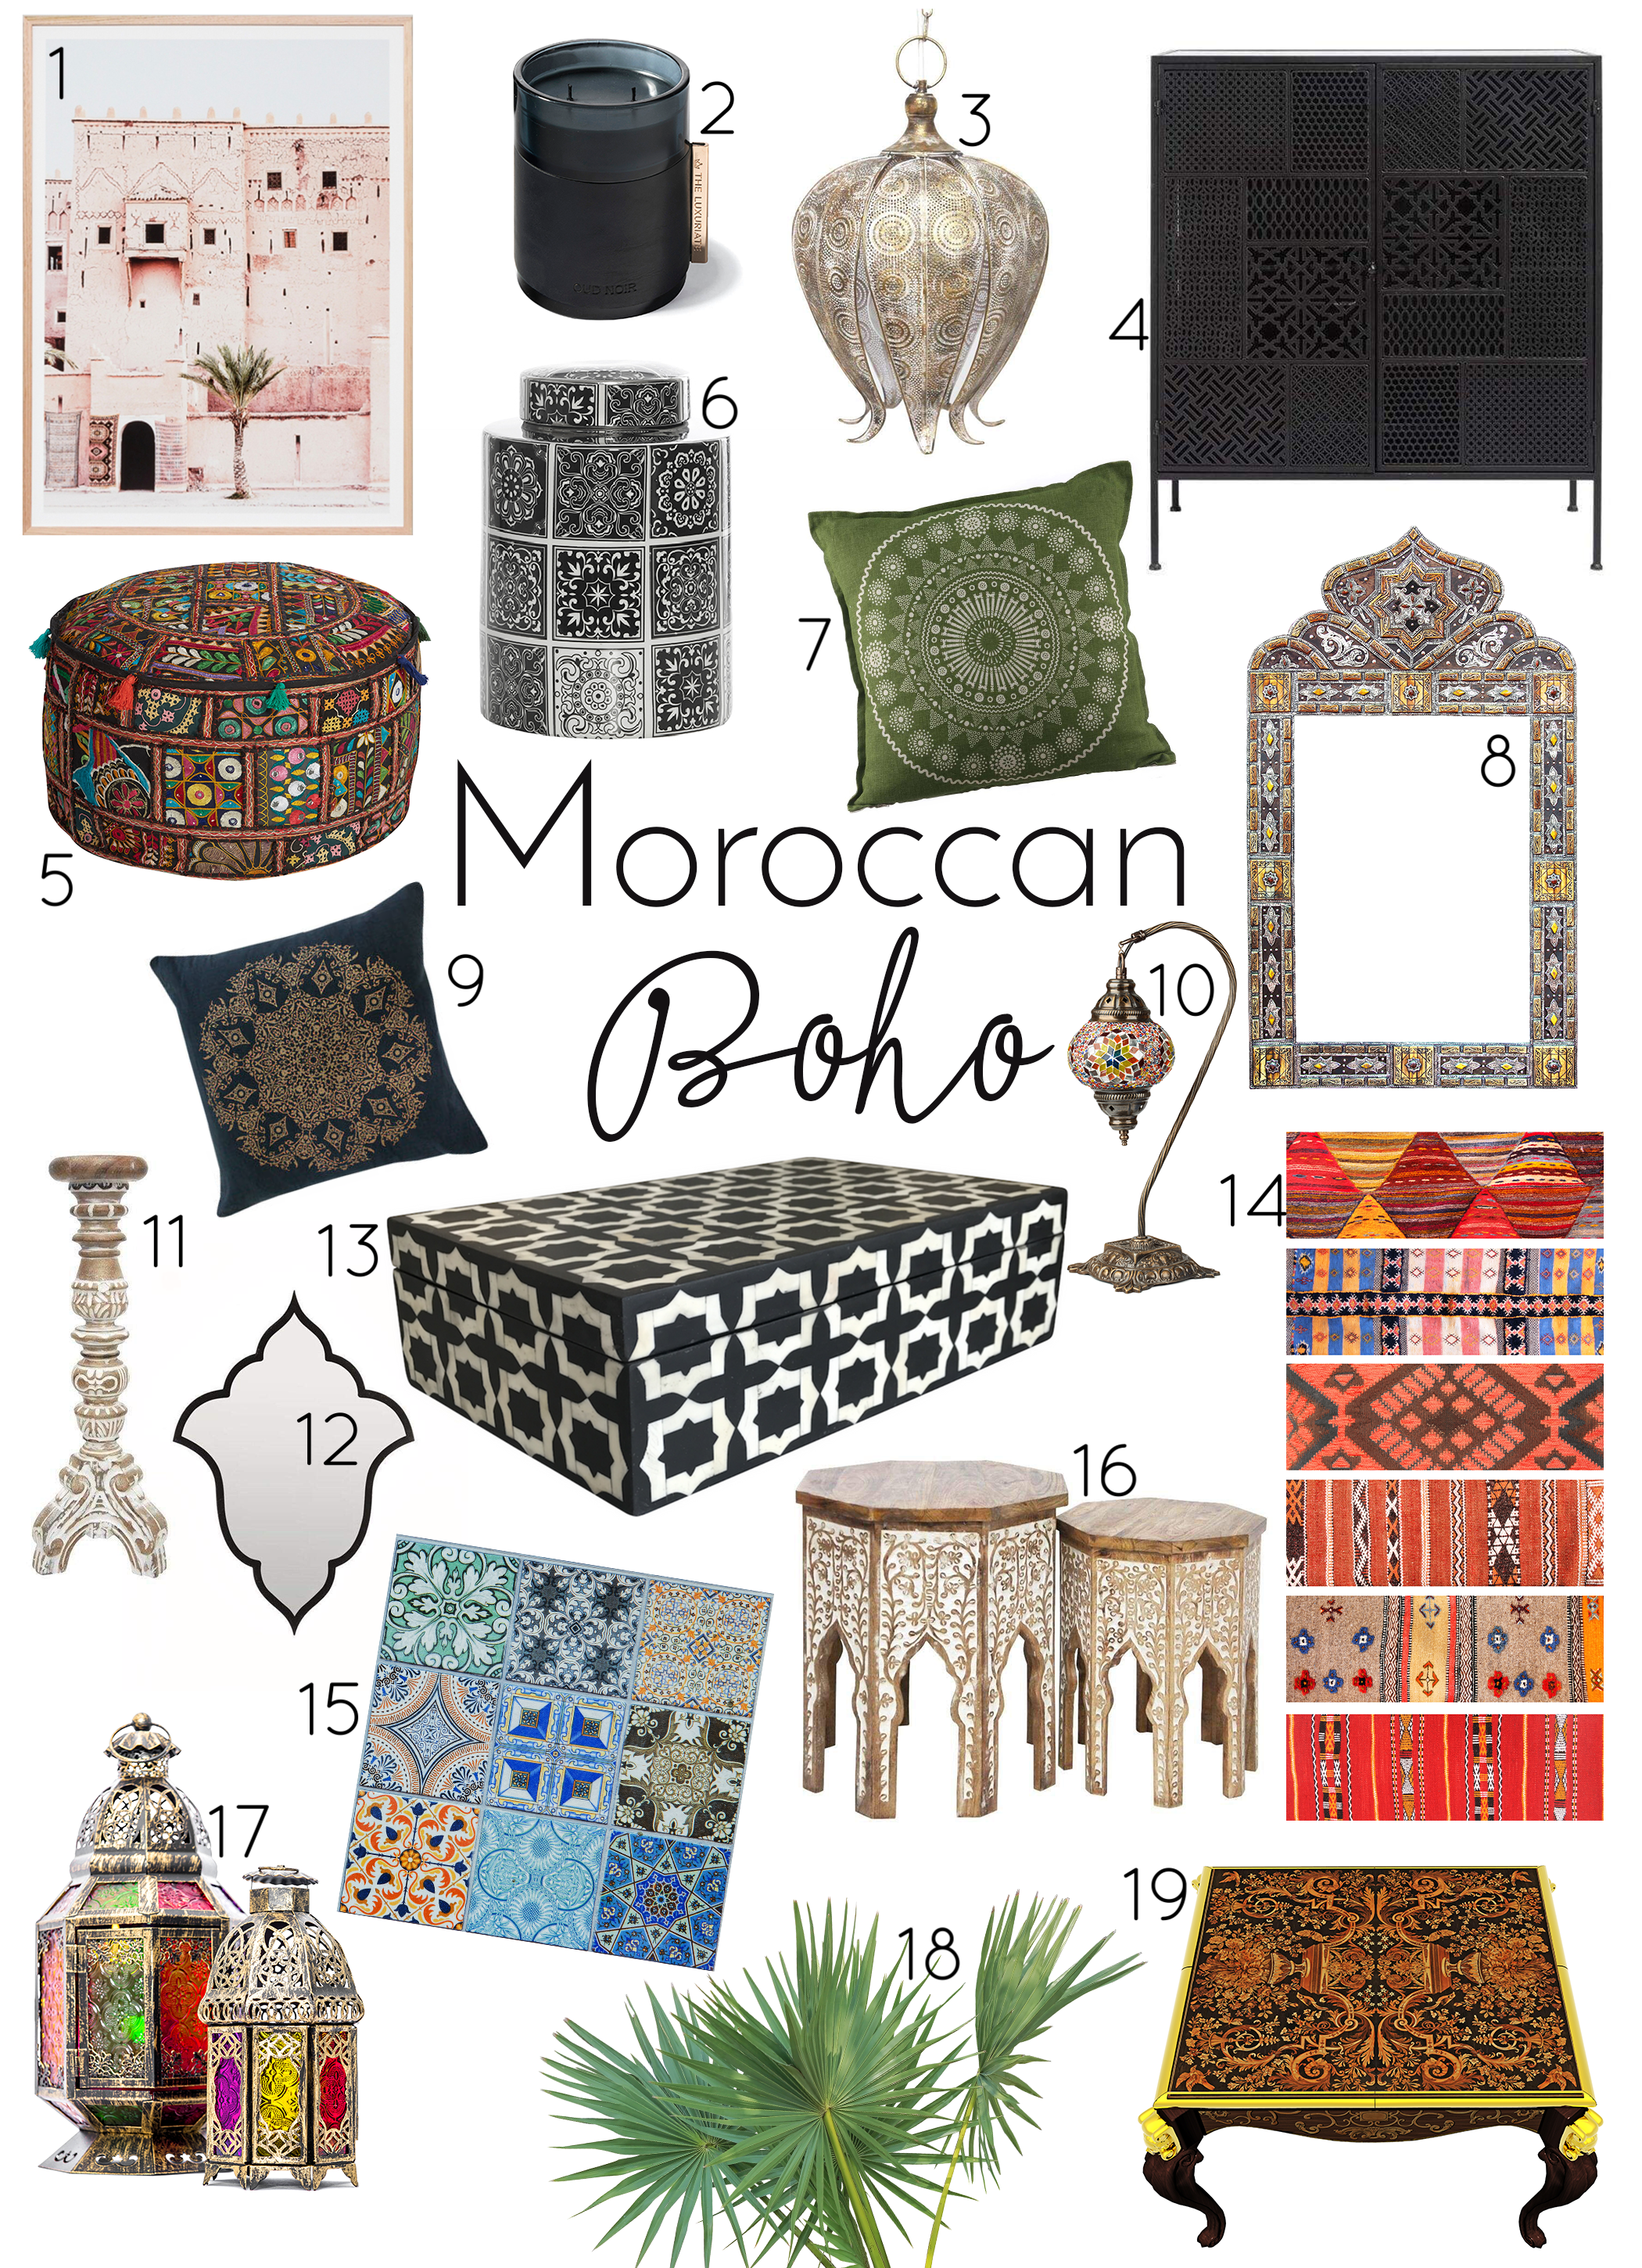 Think of… - colours, lamps, candles, mother of pearl, furniture with inlays, ottomans in leather, mosaics, Marrakesh, Morocco